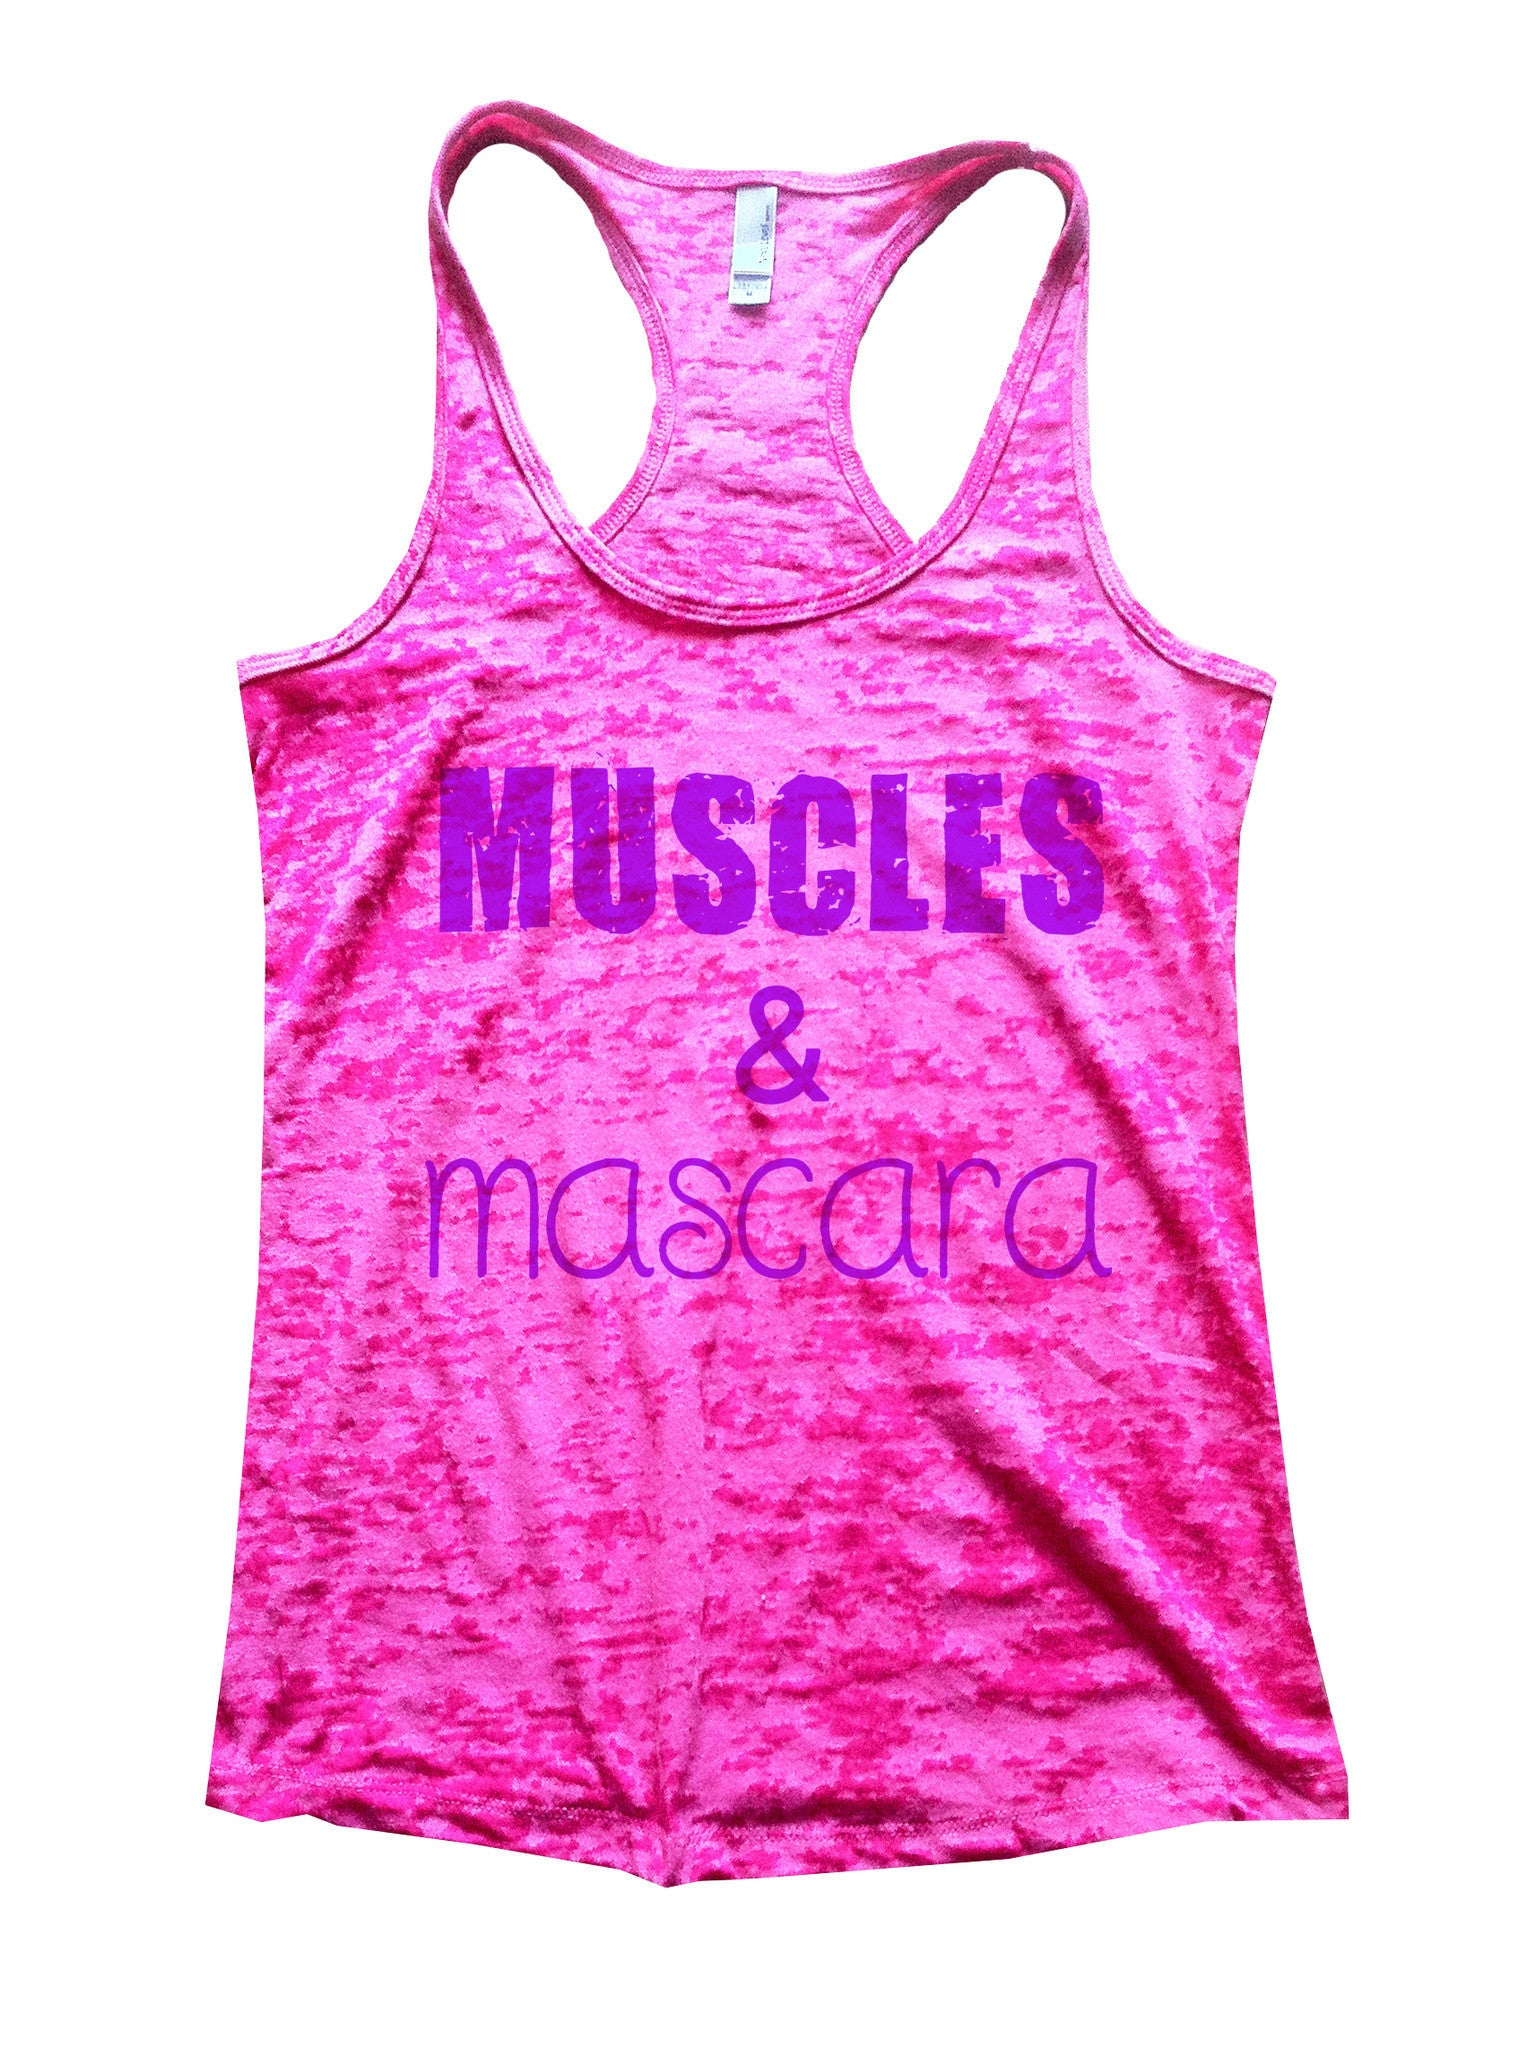 Muscles & Mascara Burnout Tank Top By BurnoutTankTops.com - 522 - Funny Shirts Tank Tops Burnouts and Triblends  - 6